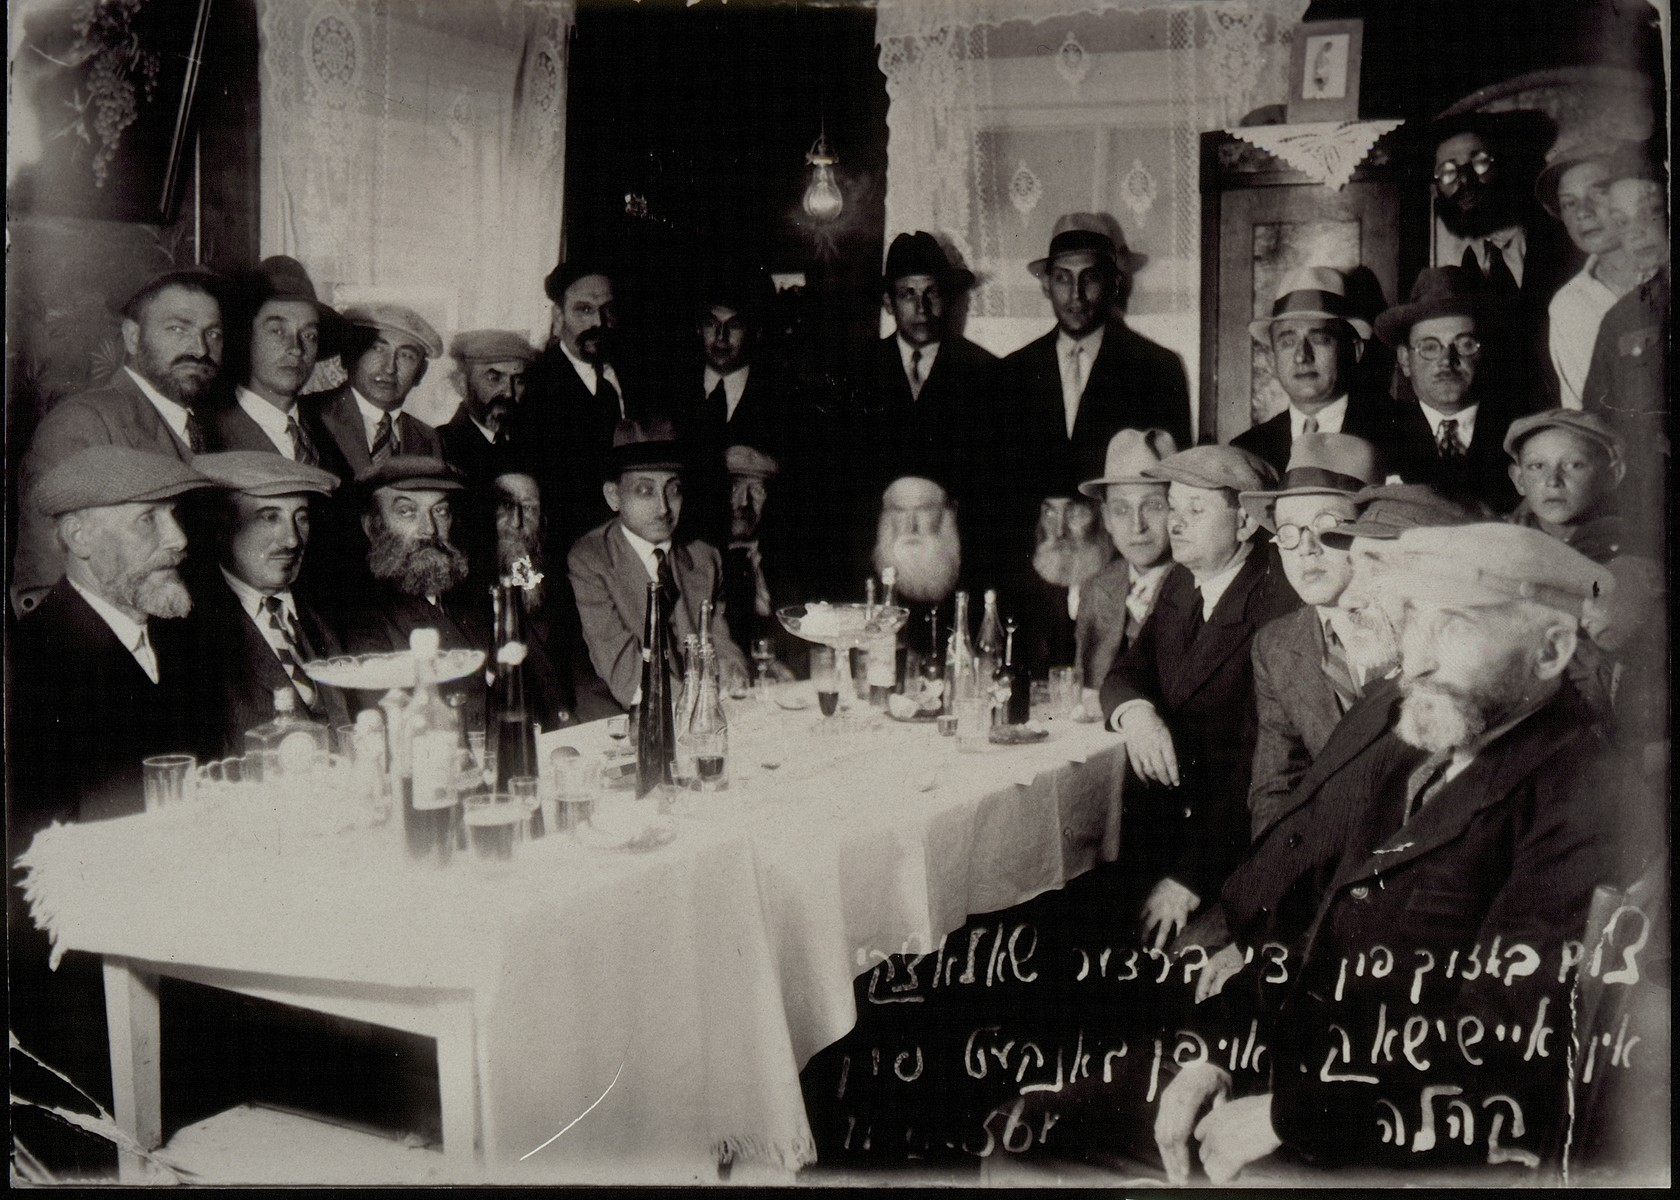 Guests at a banquet held in the Shlanski home honoring Dr. Morris Shlanski and his brother Louis, for their large donation to the Eisiskes Jewish community.  Pictured seated from left to right are: Yossl Rochowski, Avraham Dubitski, Eliyahu Bastunski, Dovid Moszcenik, Dr. Morris Shlanski, Leib Berkowicz, Rabbi Szymen Rozowski (rabbi of Eisiskes), Avraham-Mordekhai Shlanski, Louis Shlanski, Markl Koppelman; unknown, unknown and Reuven-Beinush Berkowicz.  Standing from left to right are: Baruch Matikanski, Faivl Epstein; Benyomin Tshorny, Rephael, unknown, unknown, Zelig Shlanski, Dodke Schwartz; Yudl Dwilanski and Mote Yosl Kremin.  The identity of the people in the third row is unknown.  Apart from Markl Koppelman, who was killed by members of the Polish Home Army, and the Shlanski brothers, all those pictured were killed by the Germans during the September 1941 mass shooting action in Eisiskes.